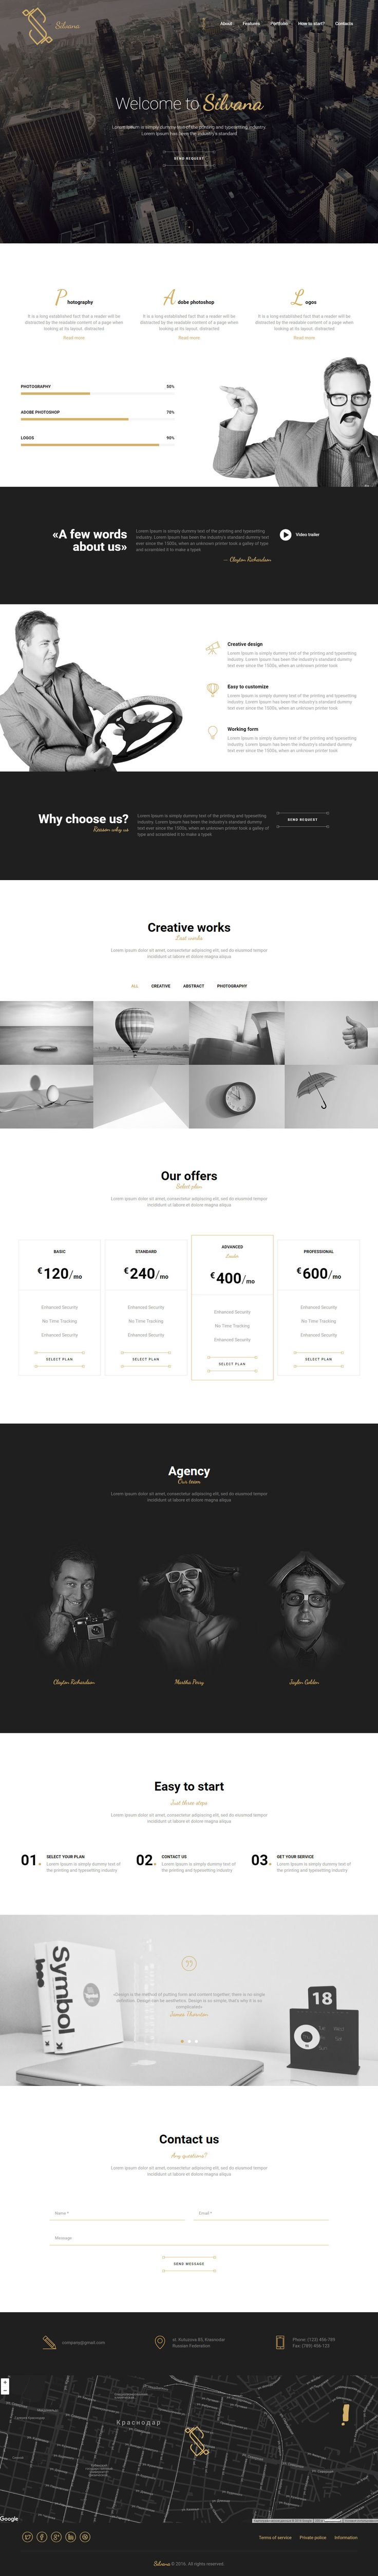 'Silvana' is a One Page HTML template suited for a smart online portfolio. There are 3 header layout options for big image, slideshow or video background. Features include skills graph, allocation for big team member images, lightbox portfolio with category filter, pricing table, testimonial slider and a nice big footer with Google Maps integration. Really like that slick contact form when you click the 'Send Request' buttons.